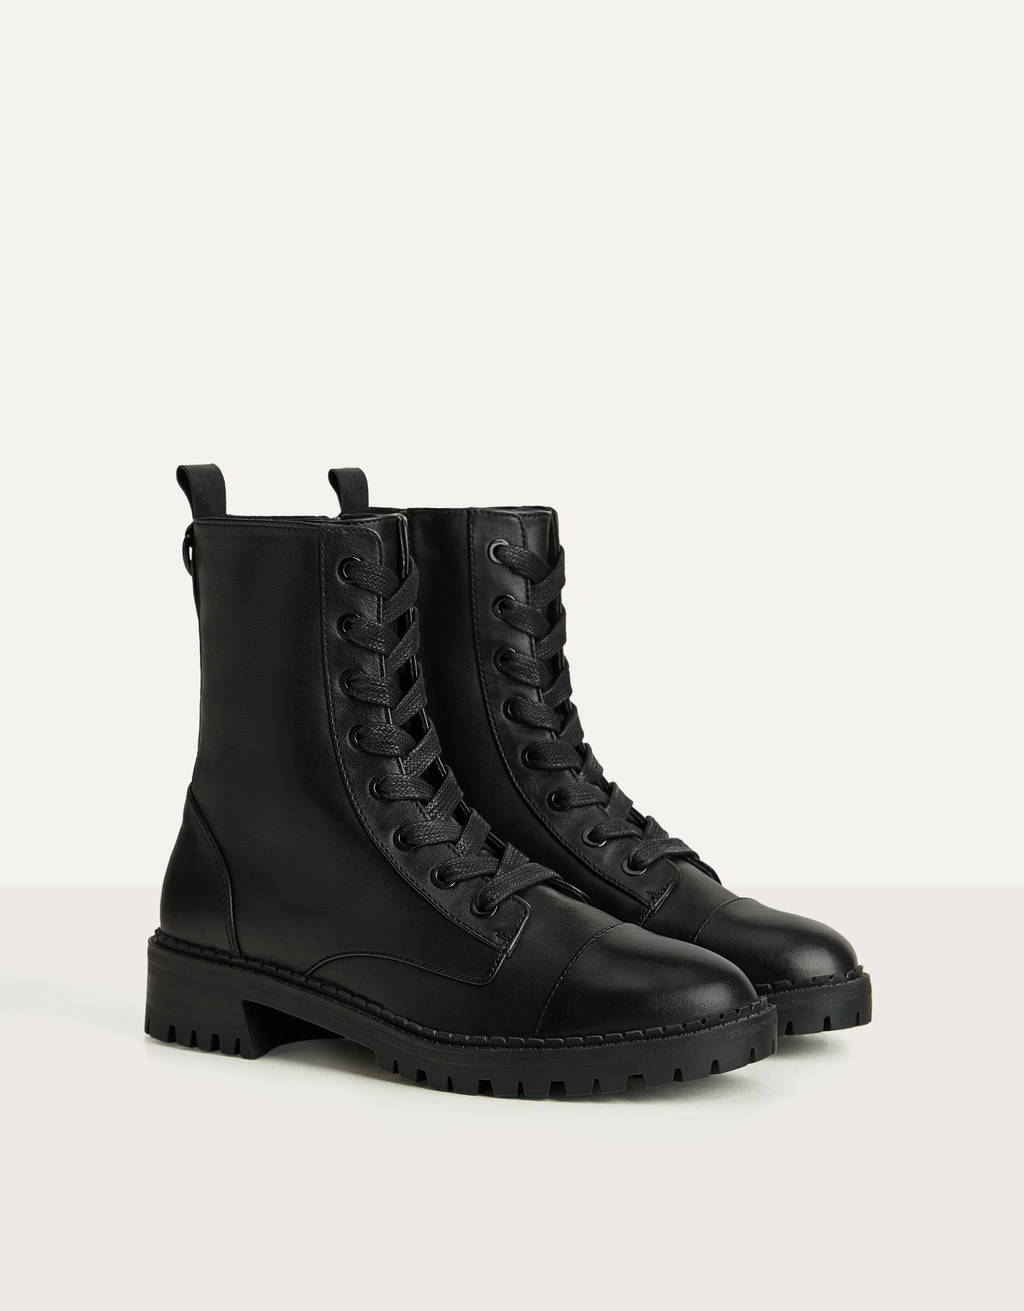 b45210cc5c7 Women's shoes - Fall 2019 | Bershka